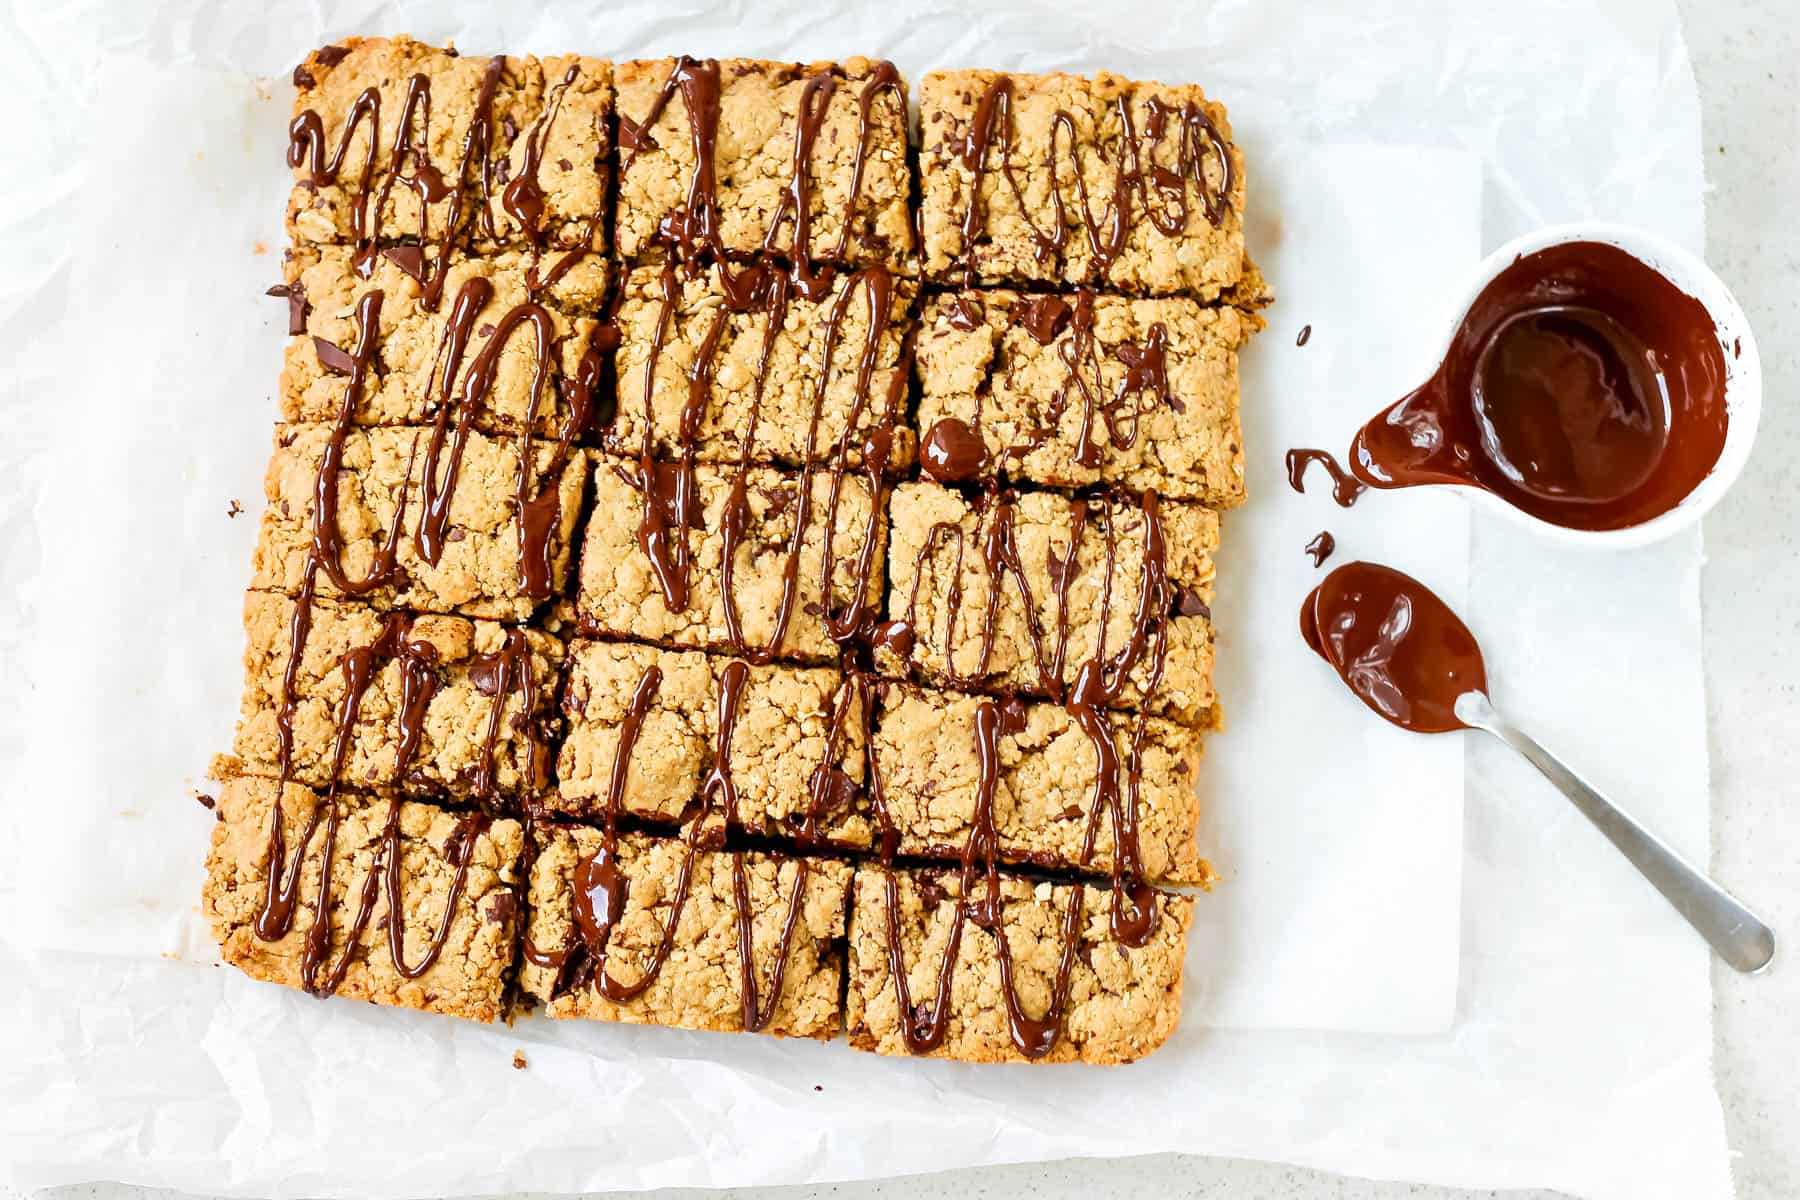 peanut butter oat bars on a sheet of parchment paper with melted chocolate to the side